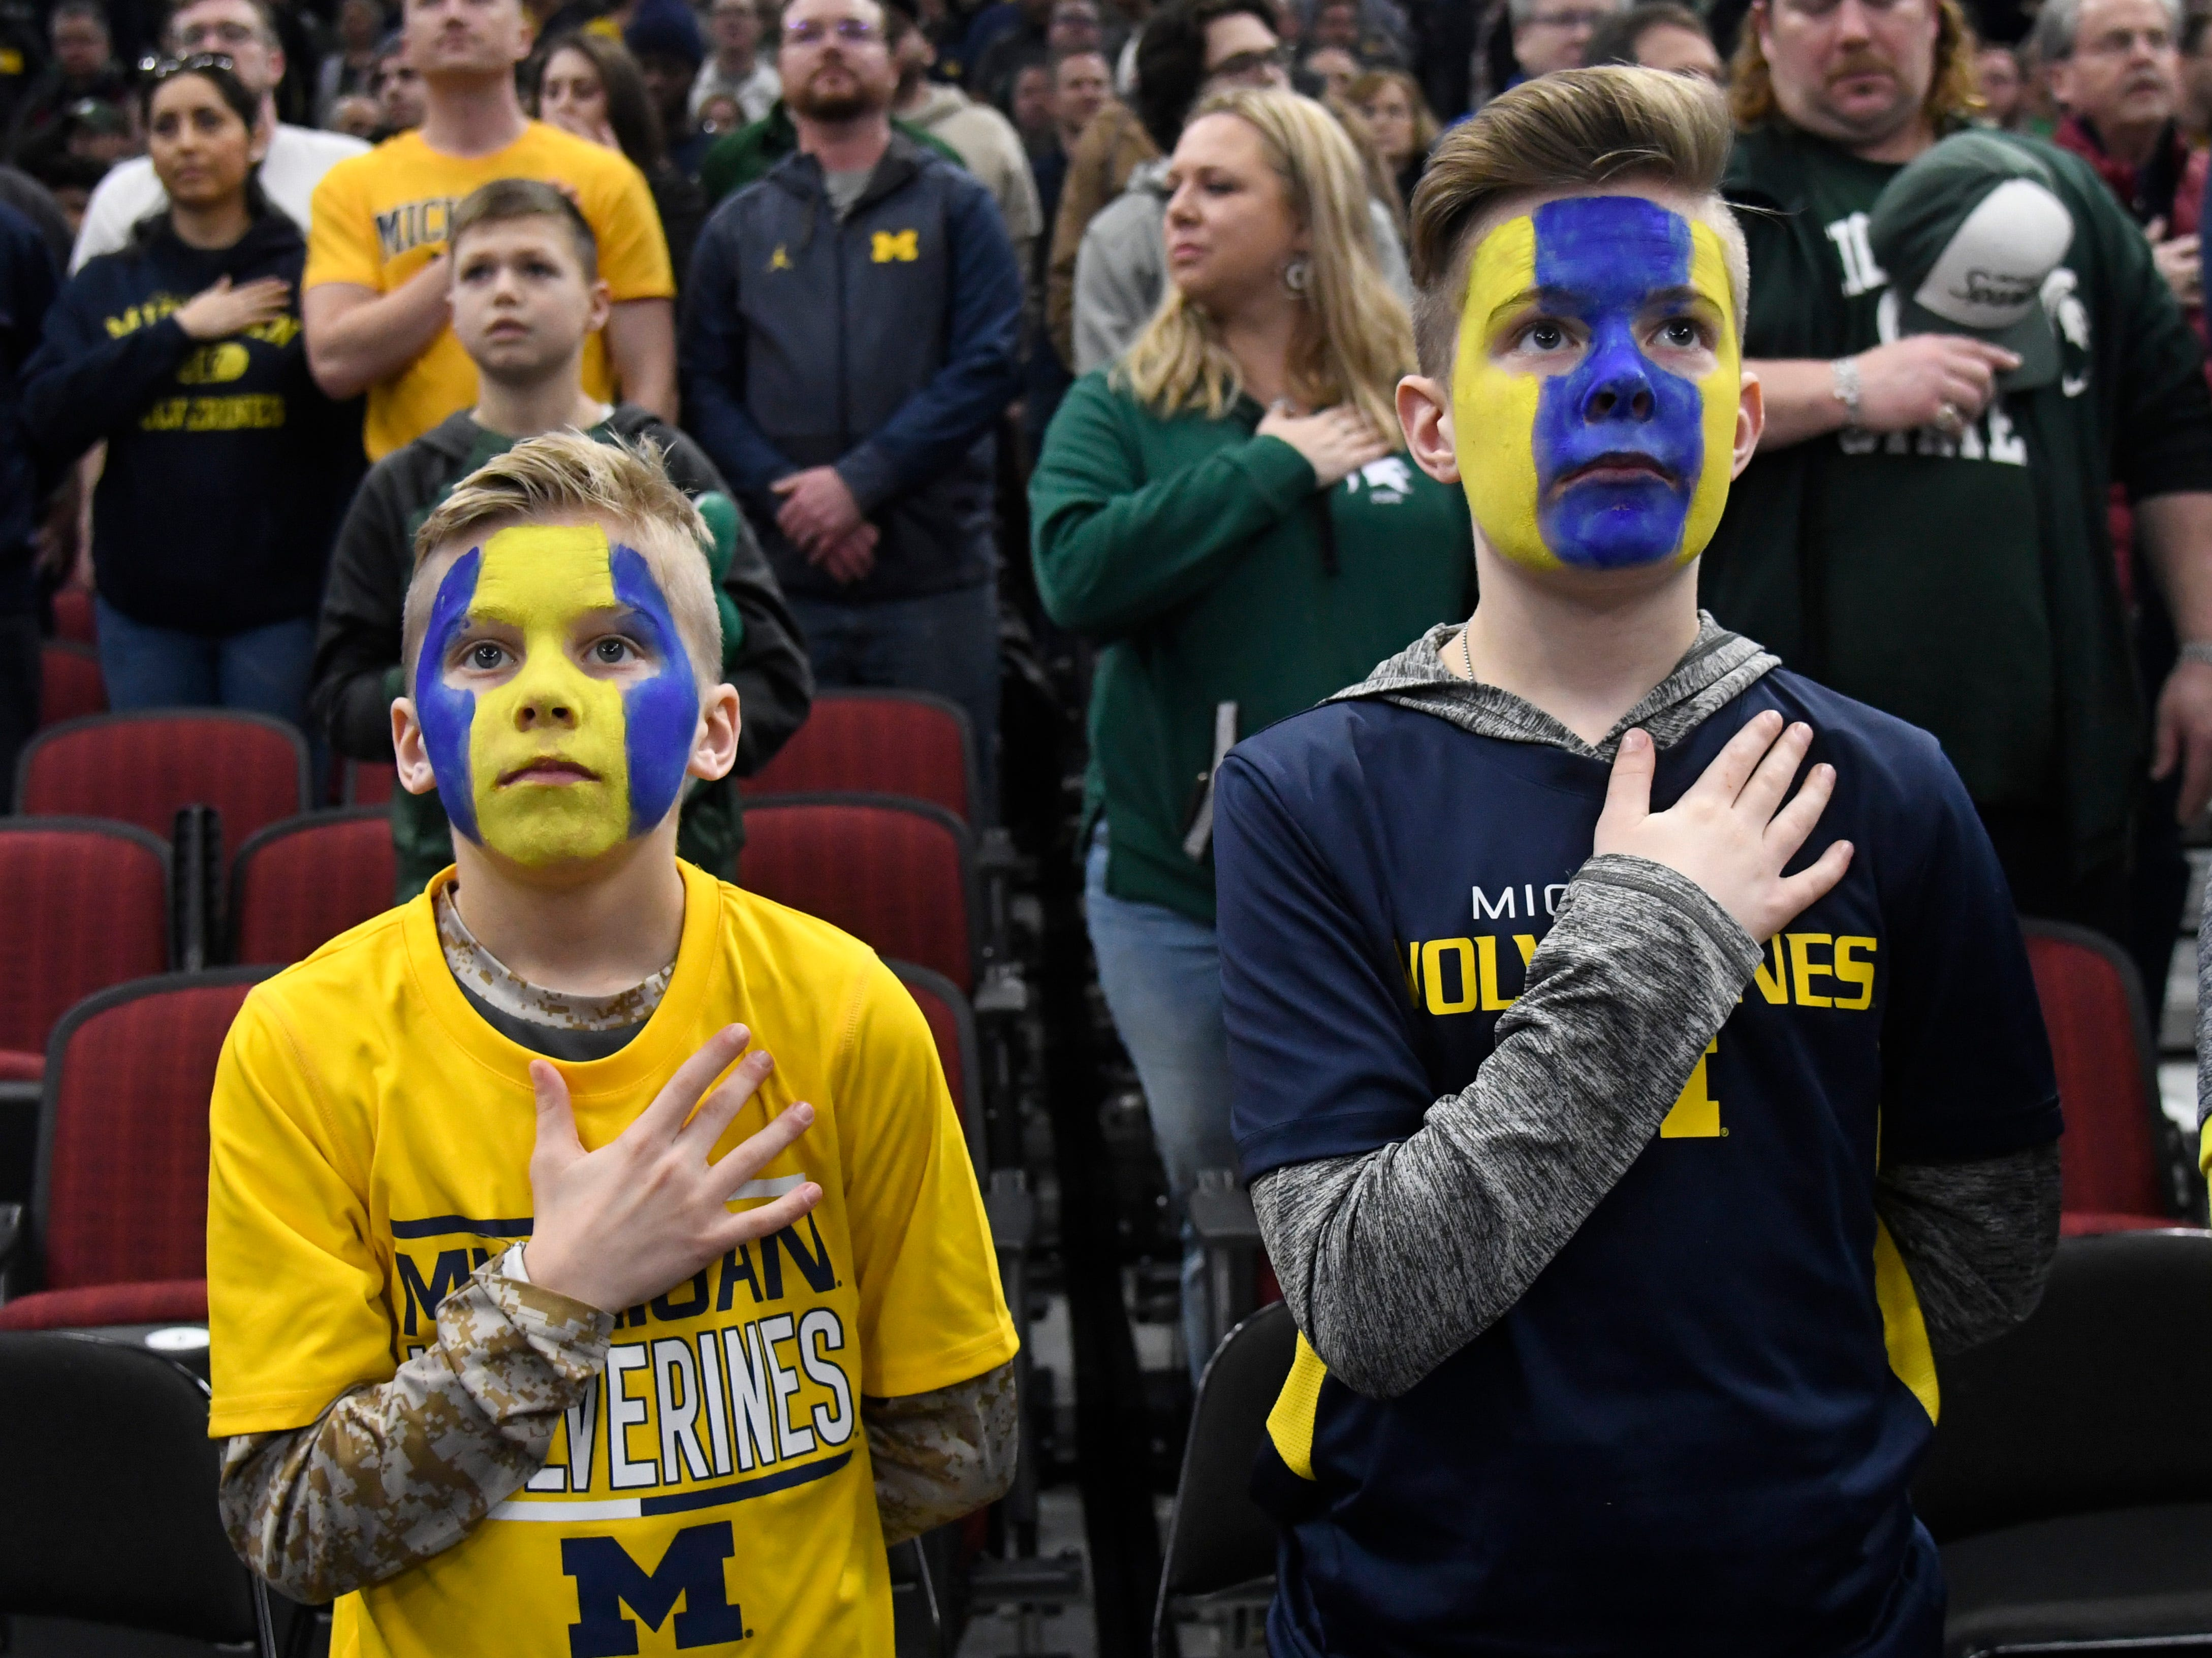 Michigan Wolverines fans stand for the national anthem before the game between the Michigan Wolverines and the Michigan State Spartans in the Big Ten conference tournament at United Center.